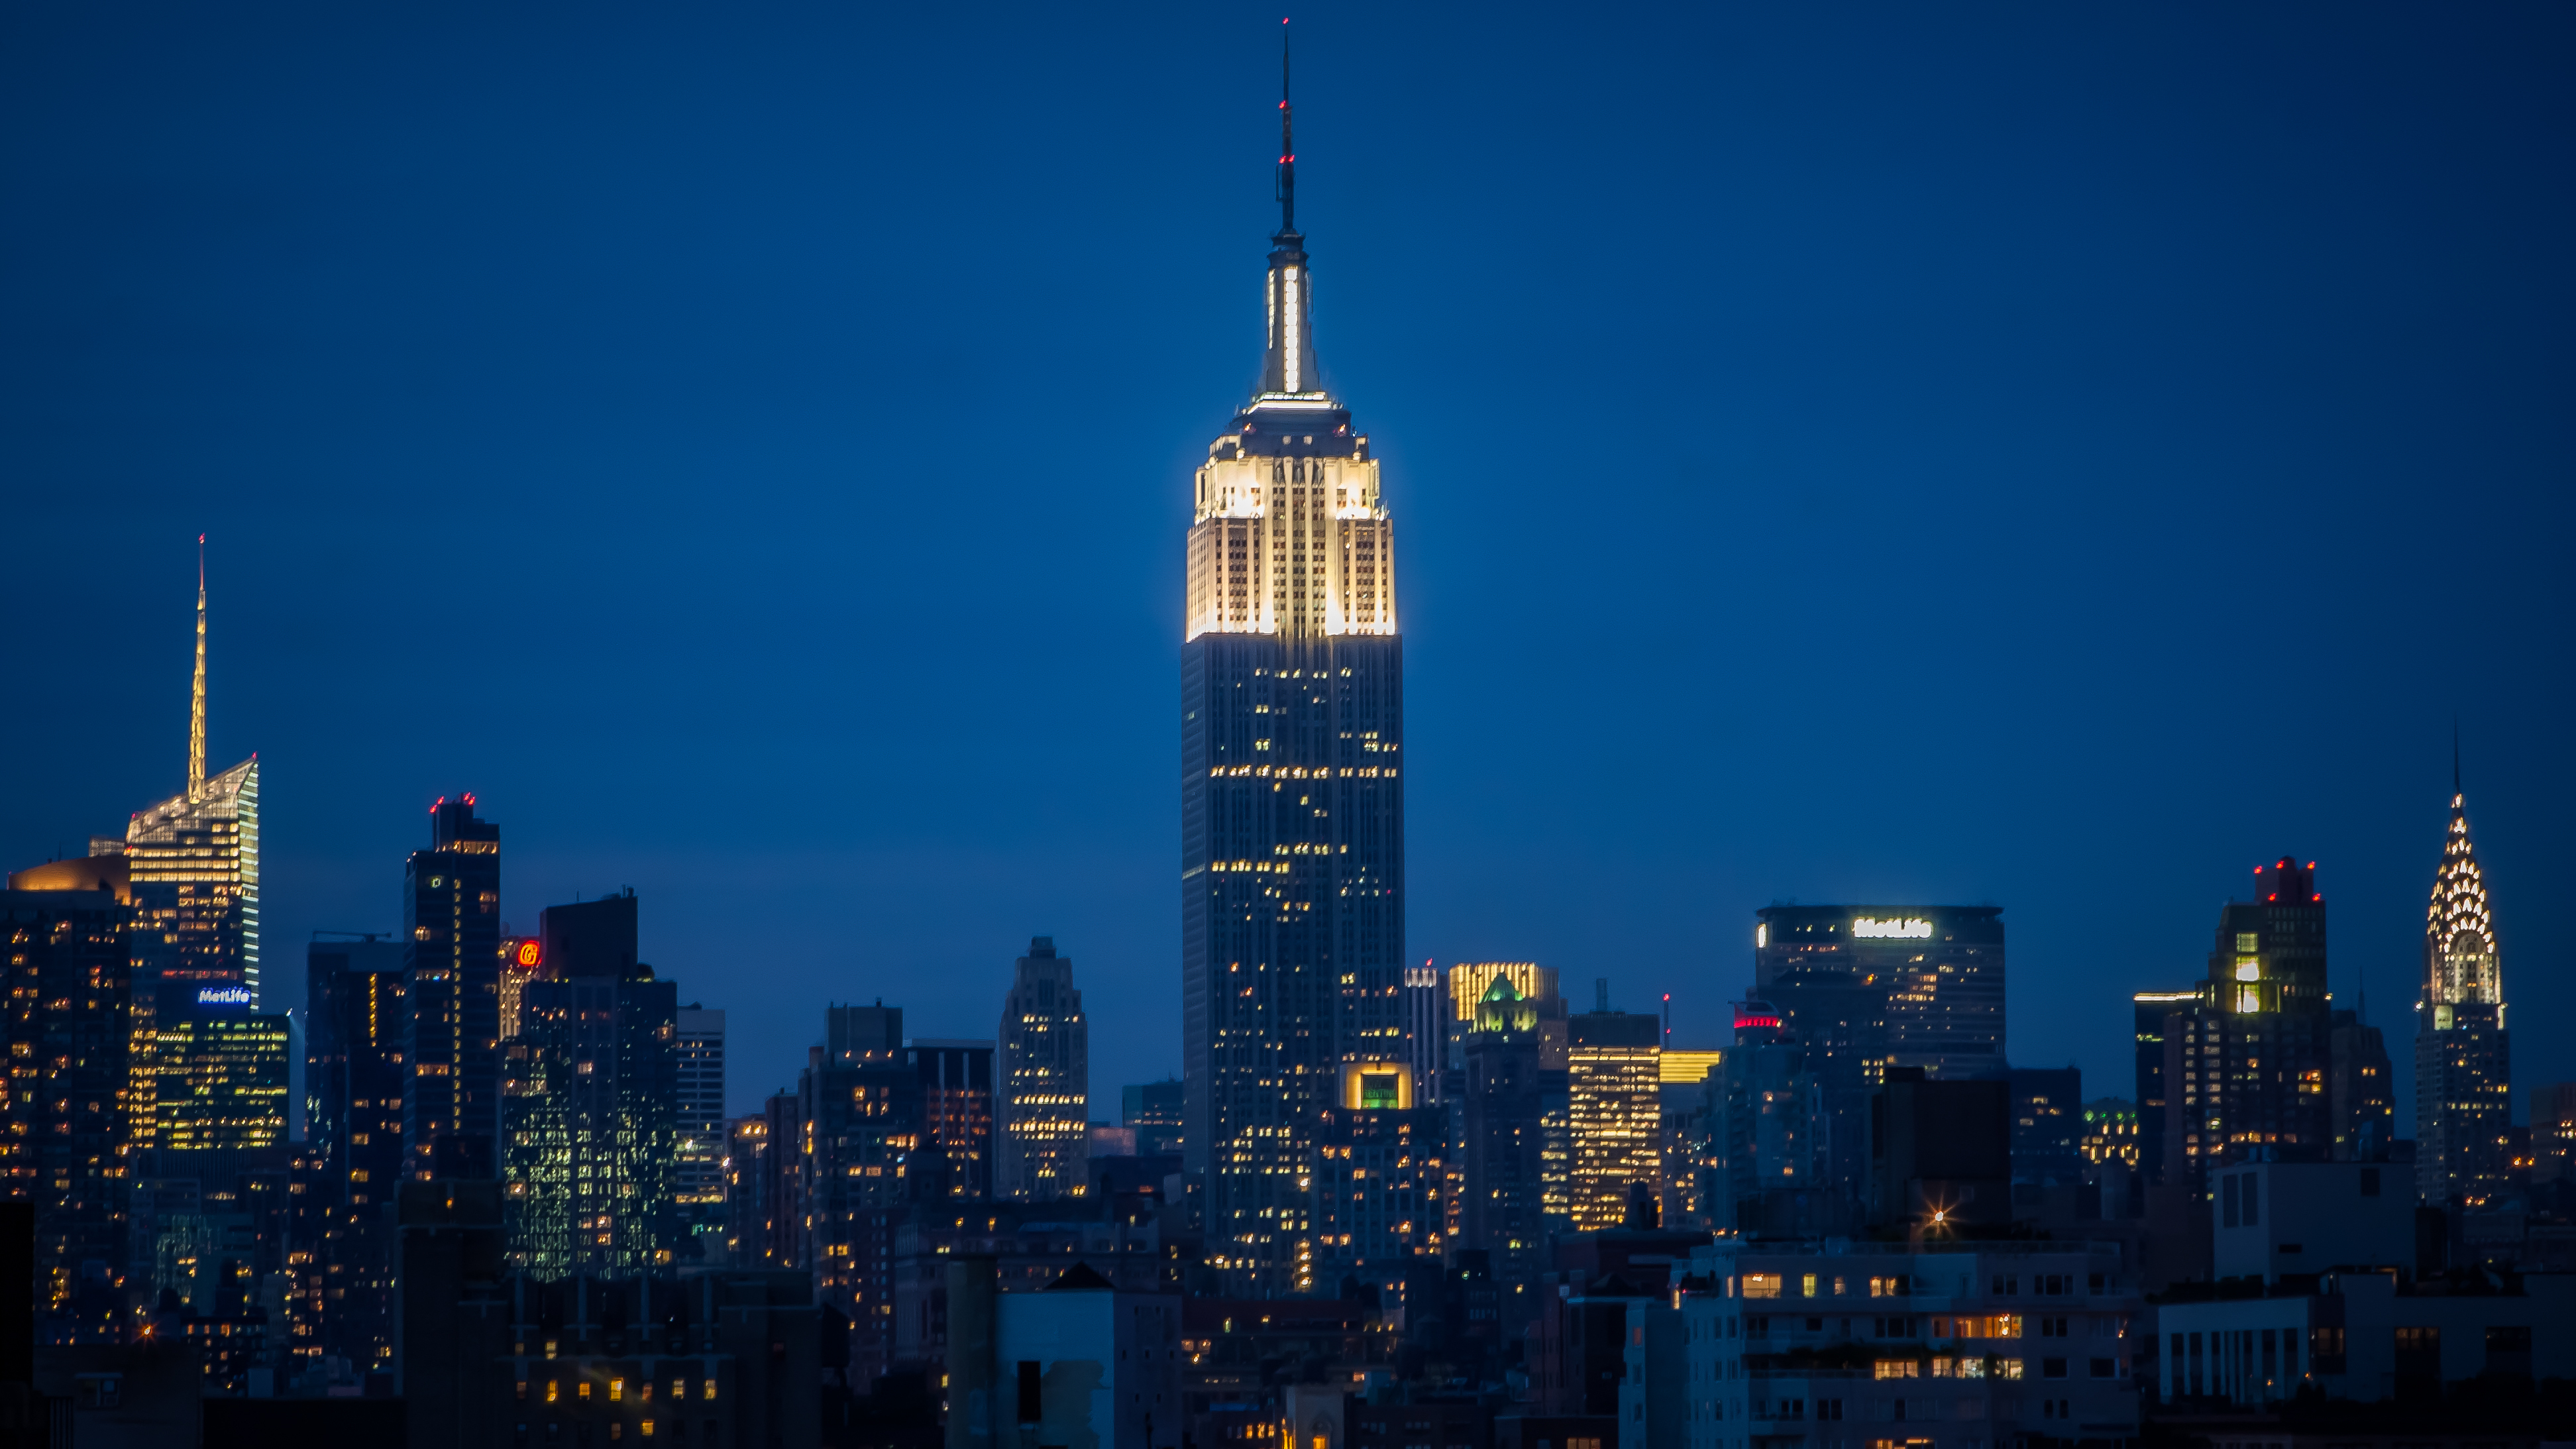 Must see Wallpaper Night Empire State Building - gettyimages-160005767_wide-2ebddd3c06f6f53ee9dfd9a28b2378ed954ea792  HD-33484.jpg?s\u003d1400